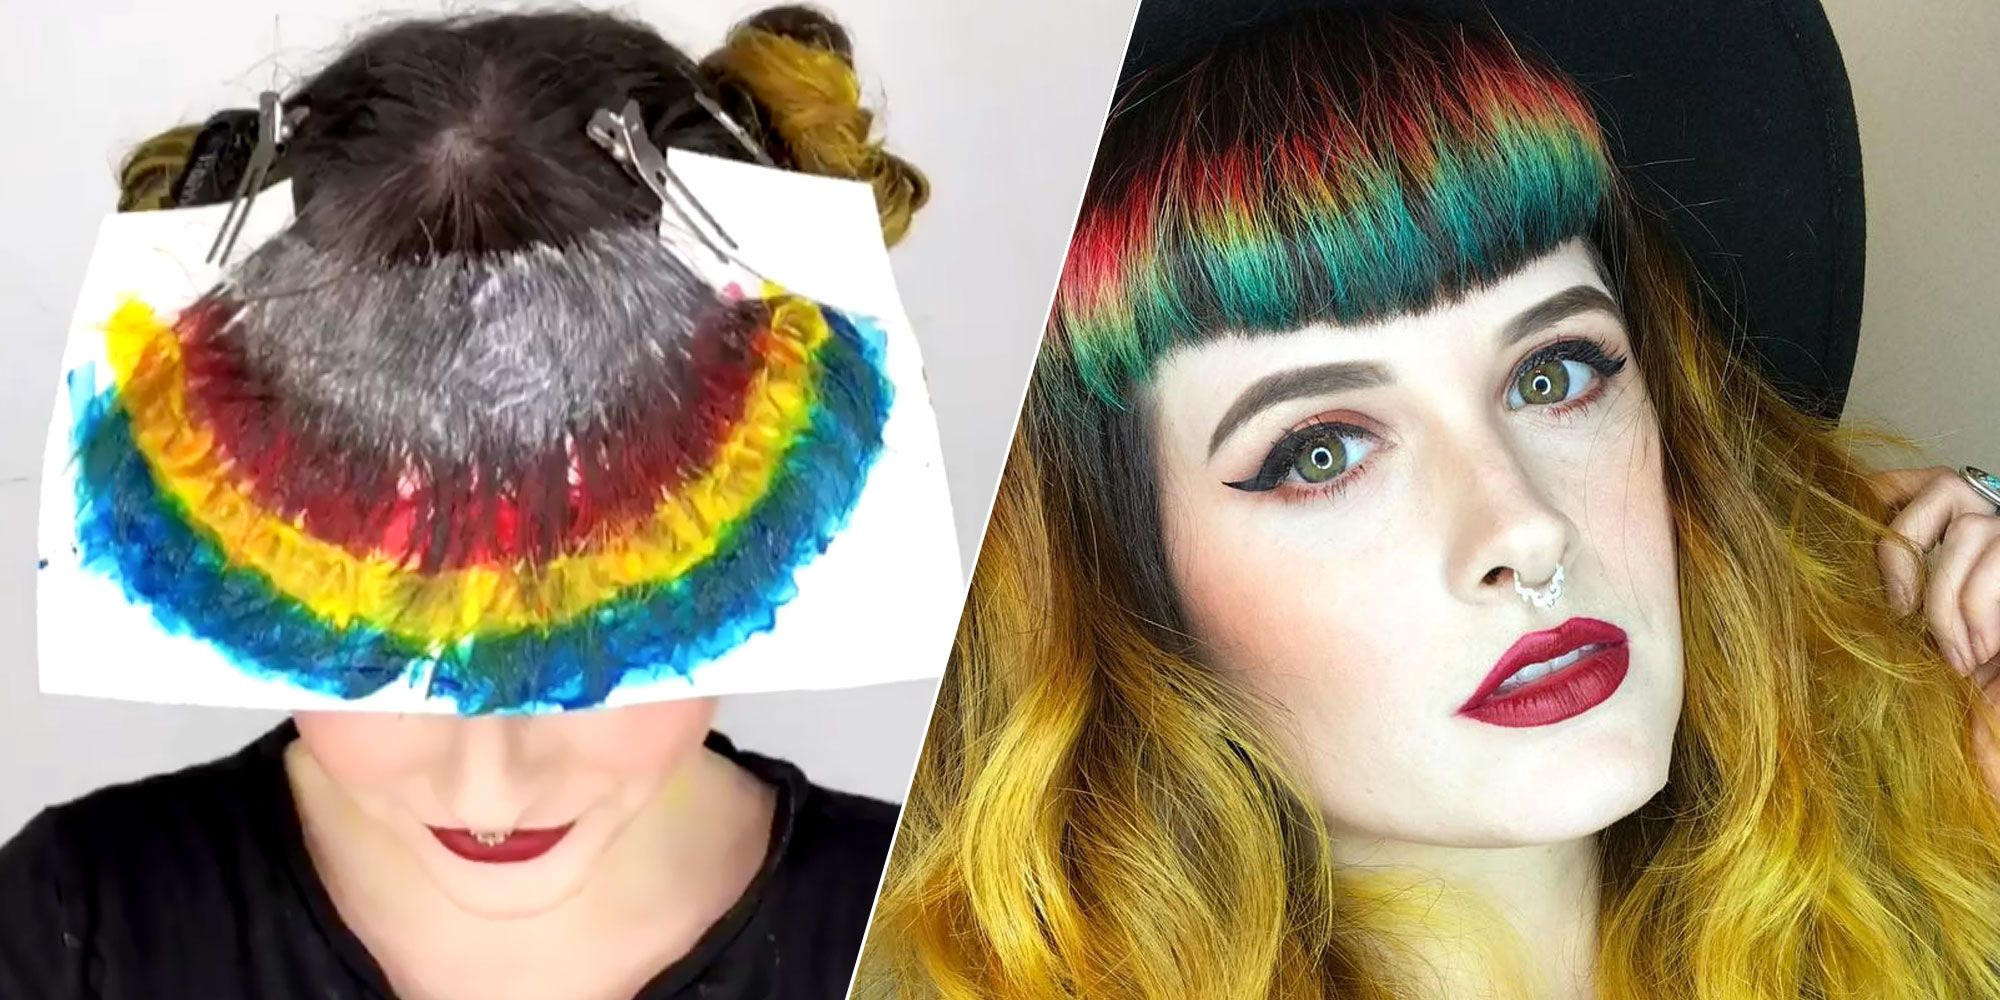 This Woman S Rainbow Bangs Are Mesmerizing How To Get Rainbow Bangs